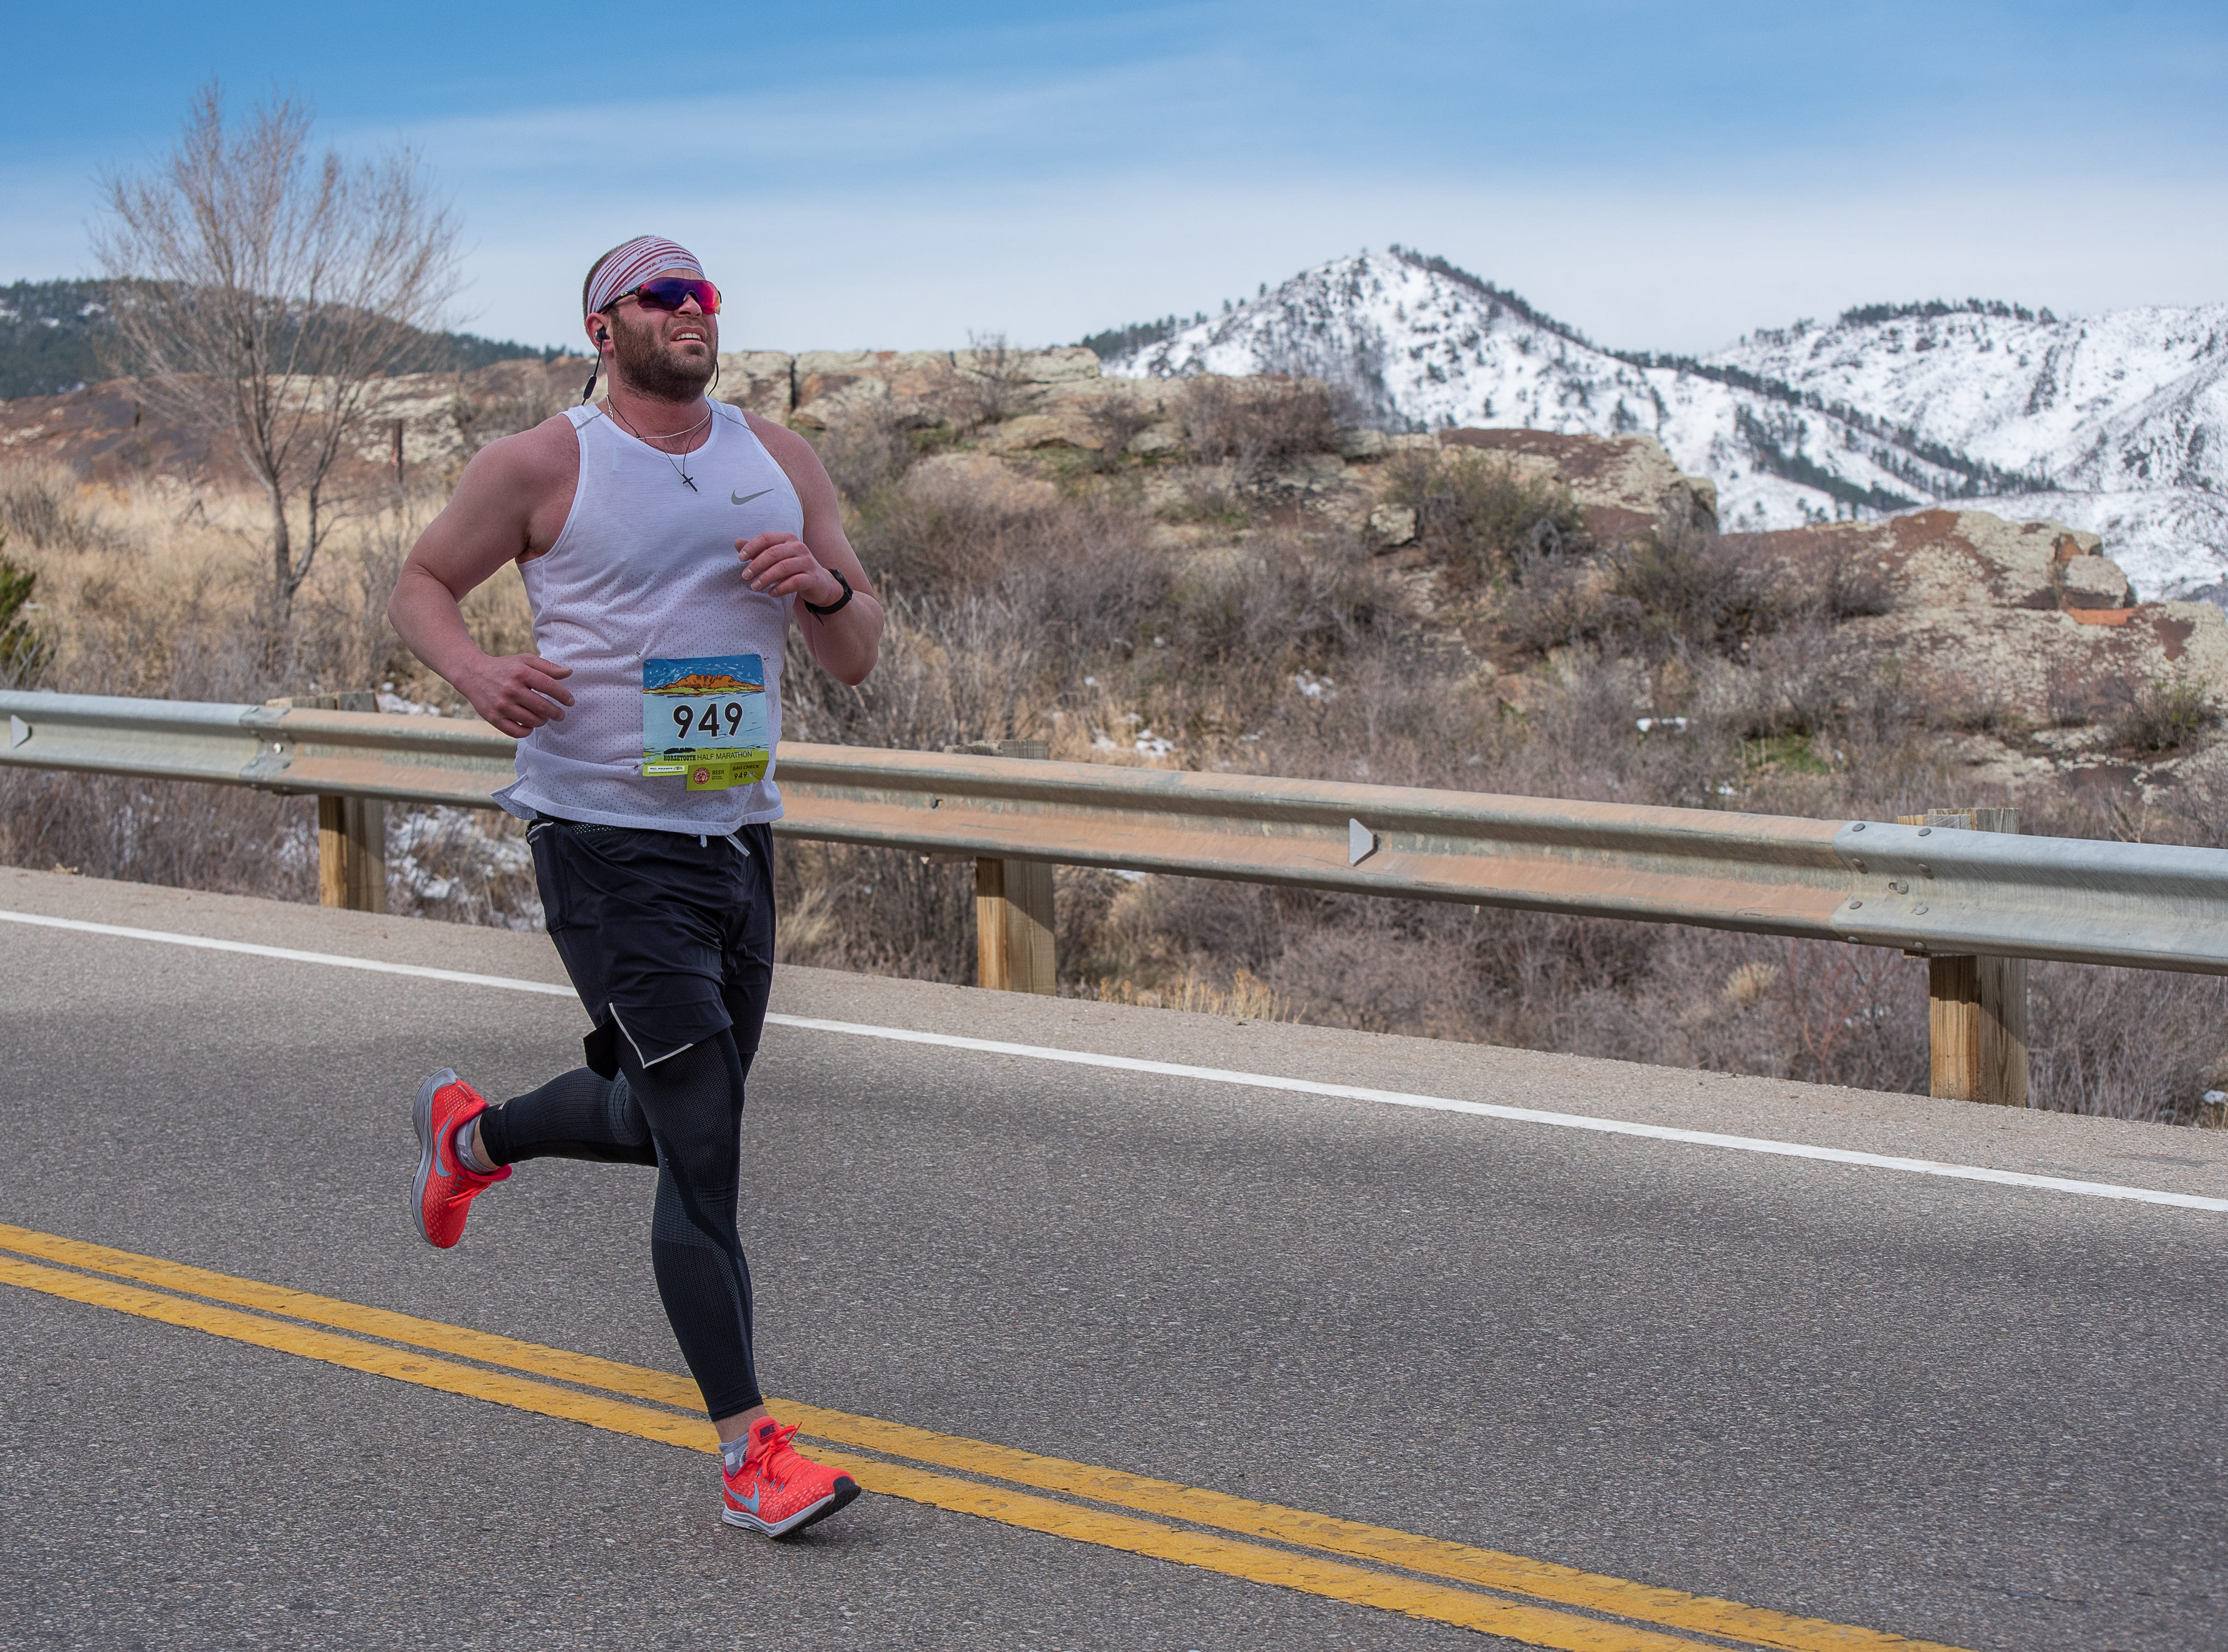 A participant descends a hill during the Horsetooth Half Marathon on Sunday, April 14, 2019, in Fort Collins, Colo.